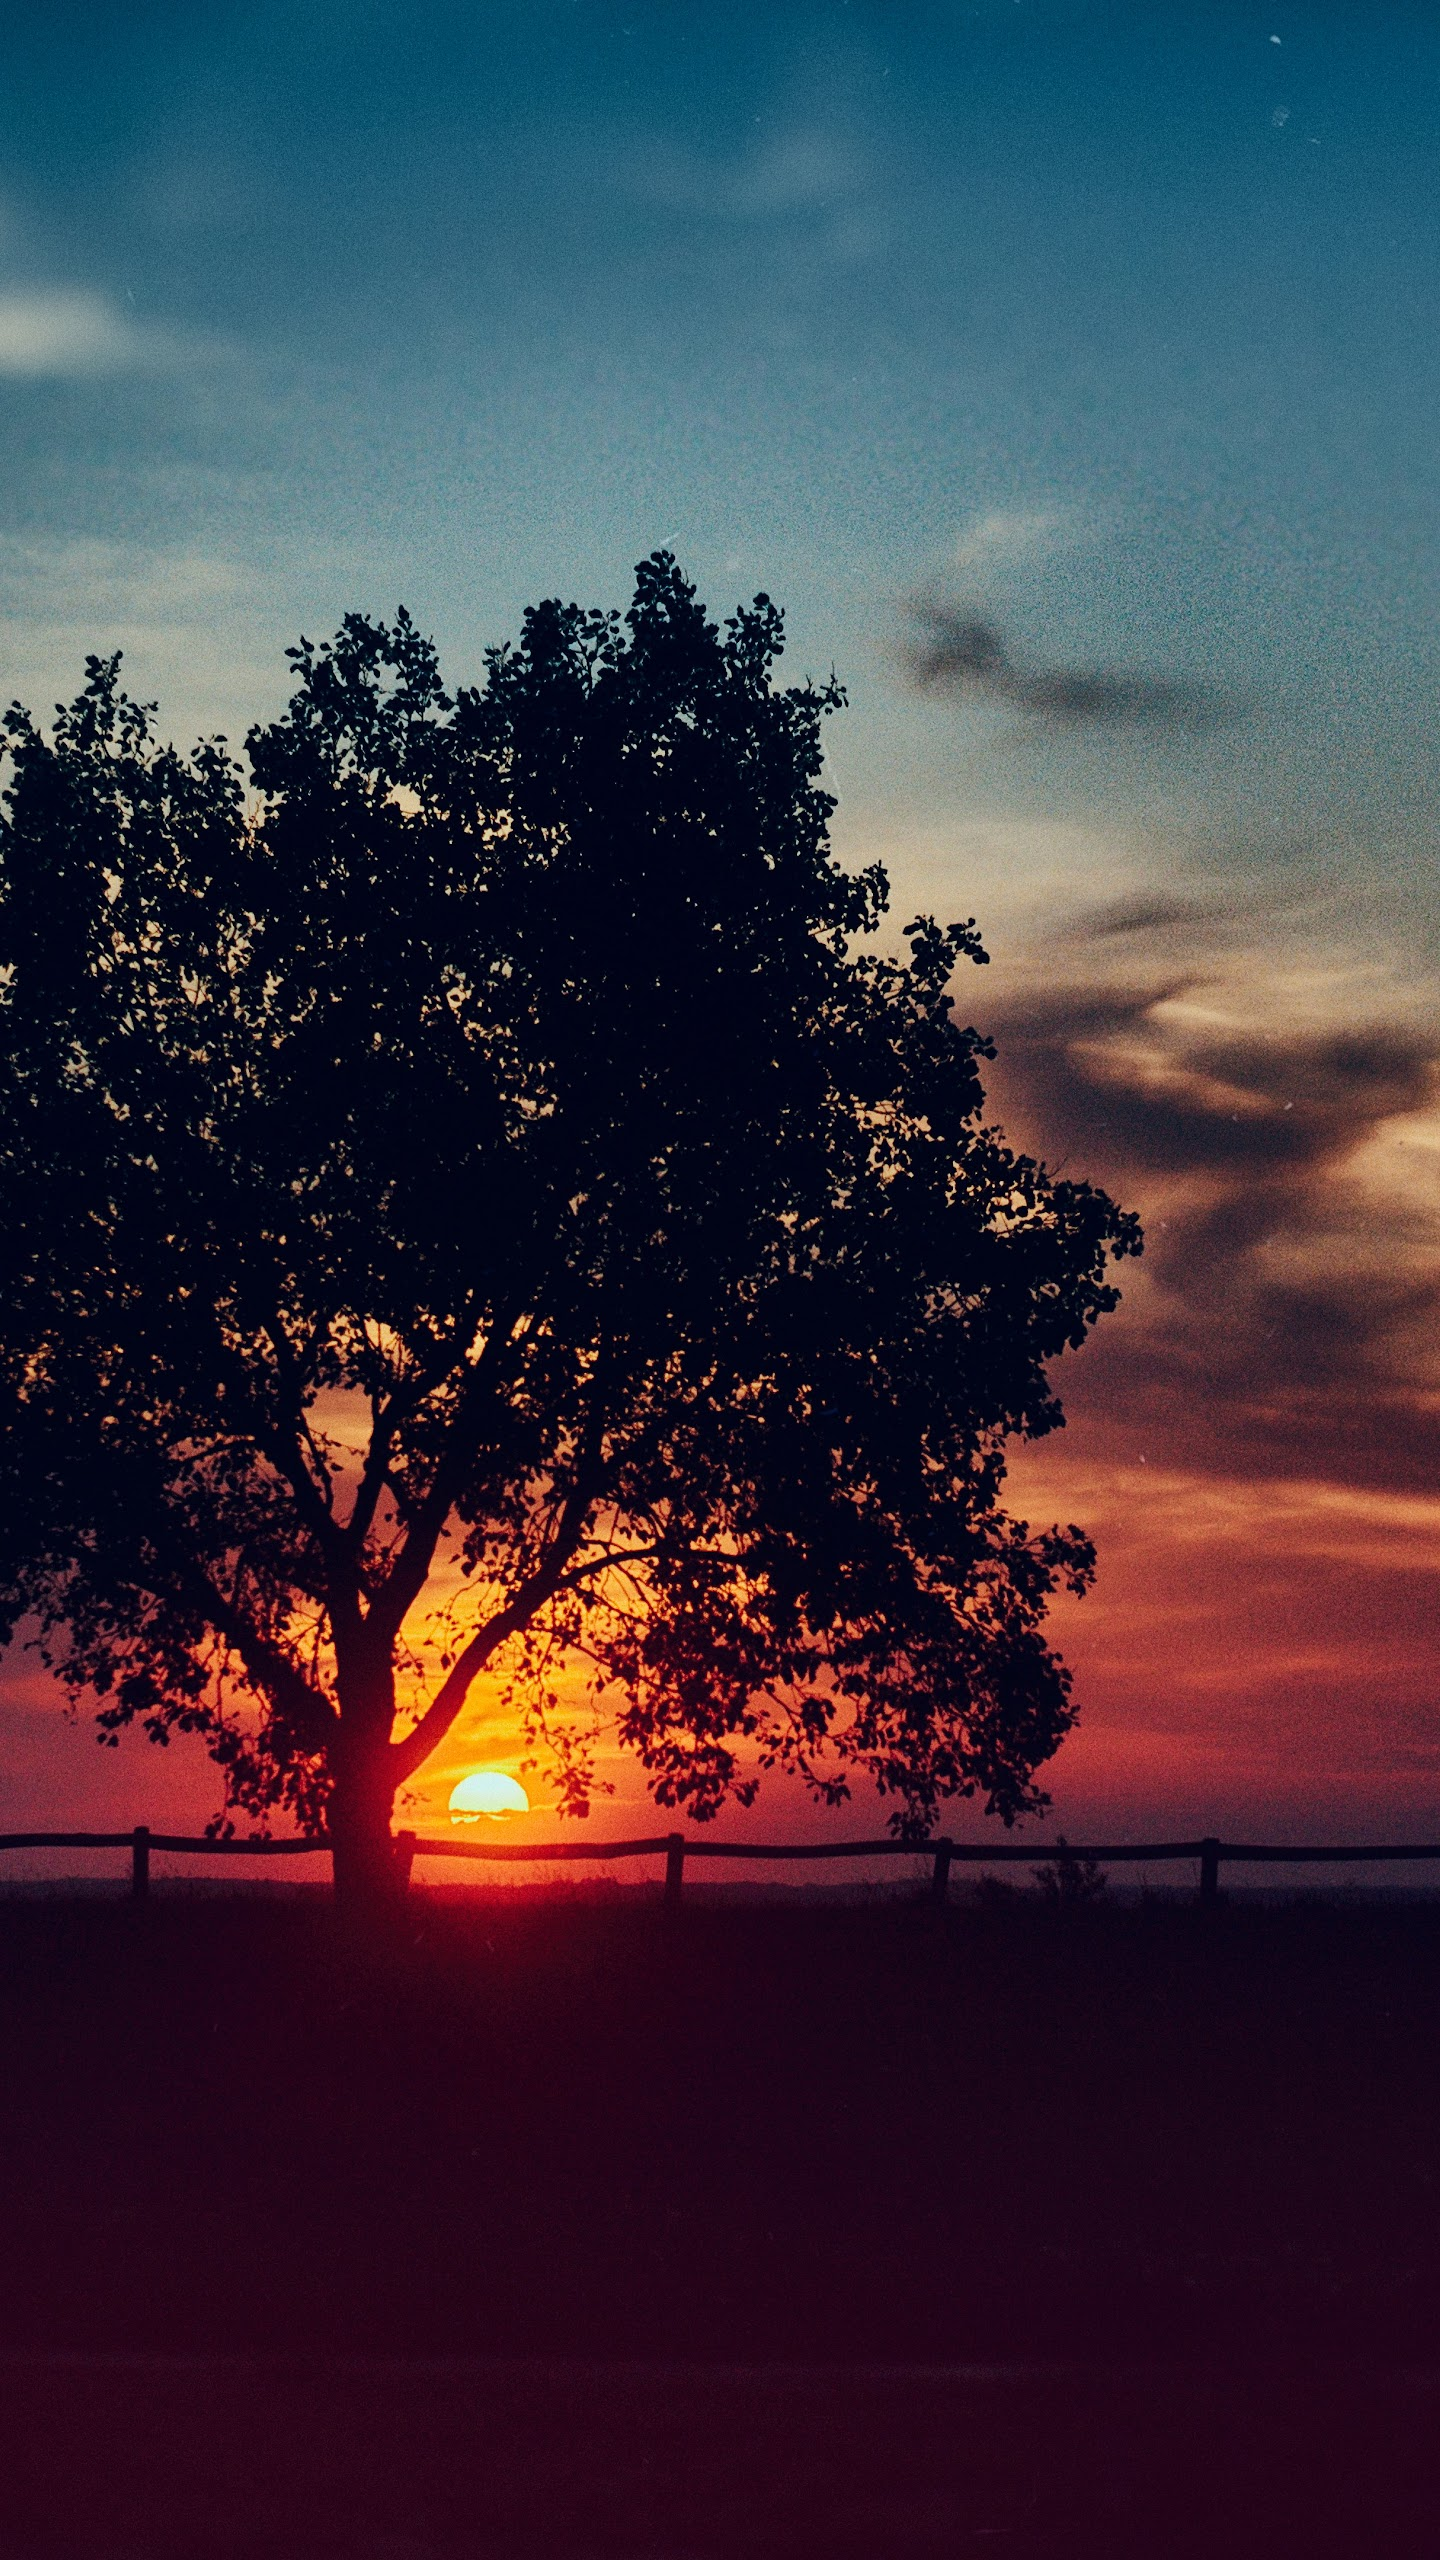 Sunset Scenery Tree Landscape Nature 8k Wallpaper 101